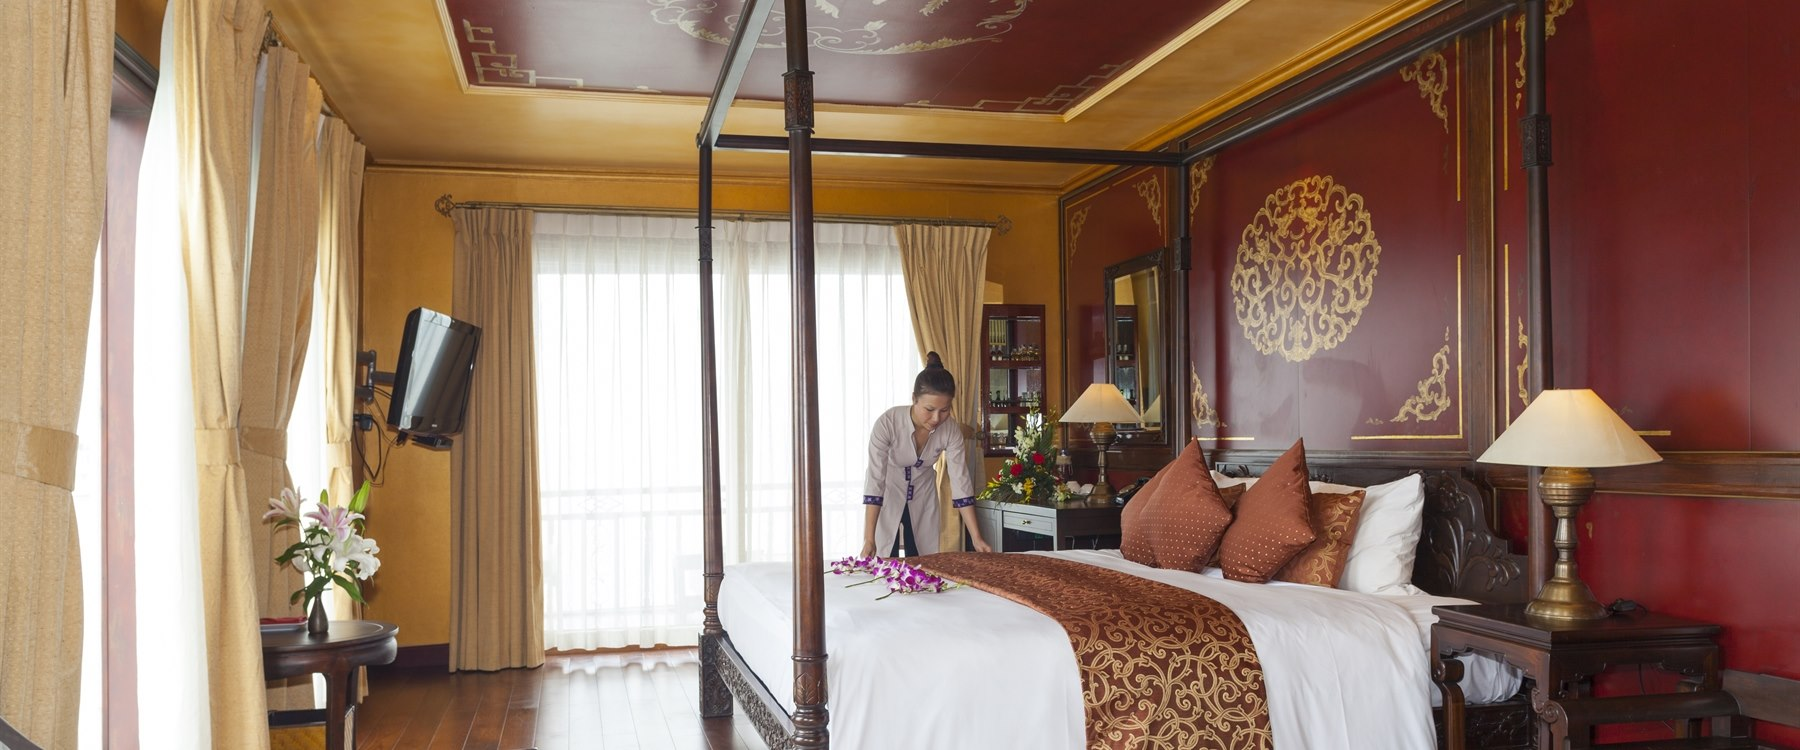 Violet dragon suite Heritage Line Halong Bay Cruises